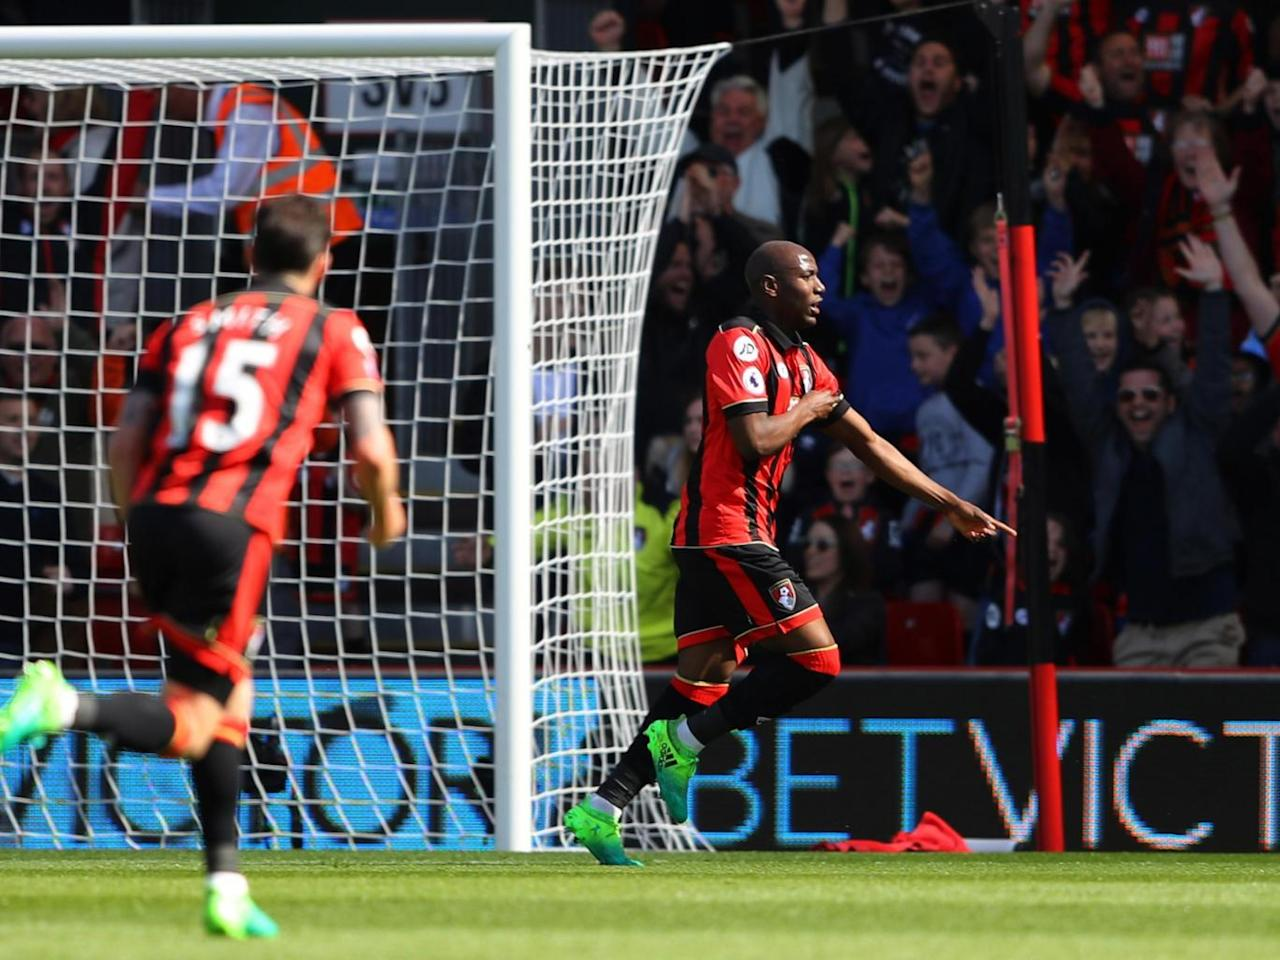 Bournemouth deal 10-man Middlesbrough big setback in relegation fight